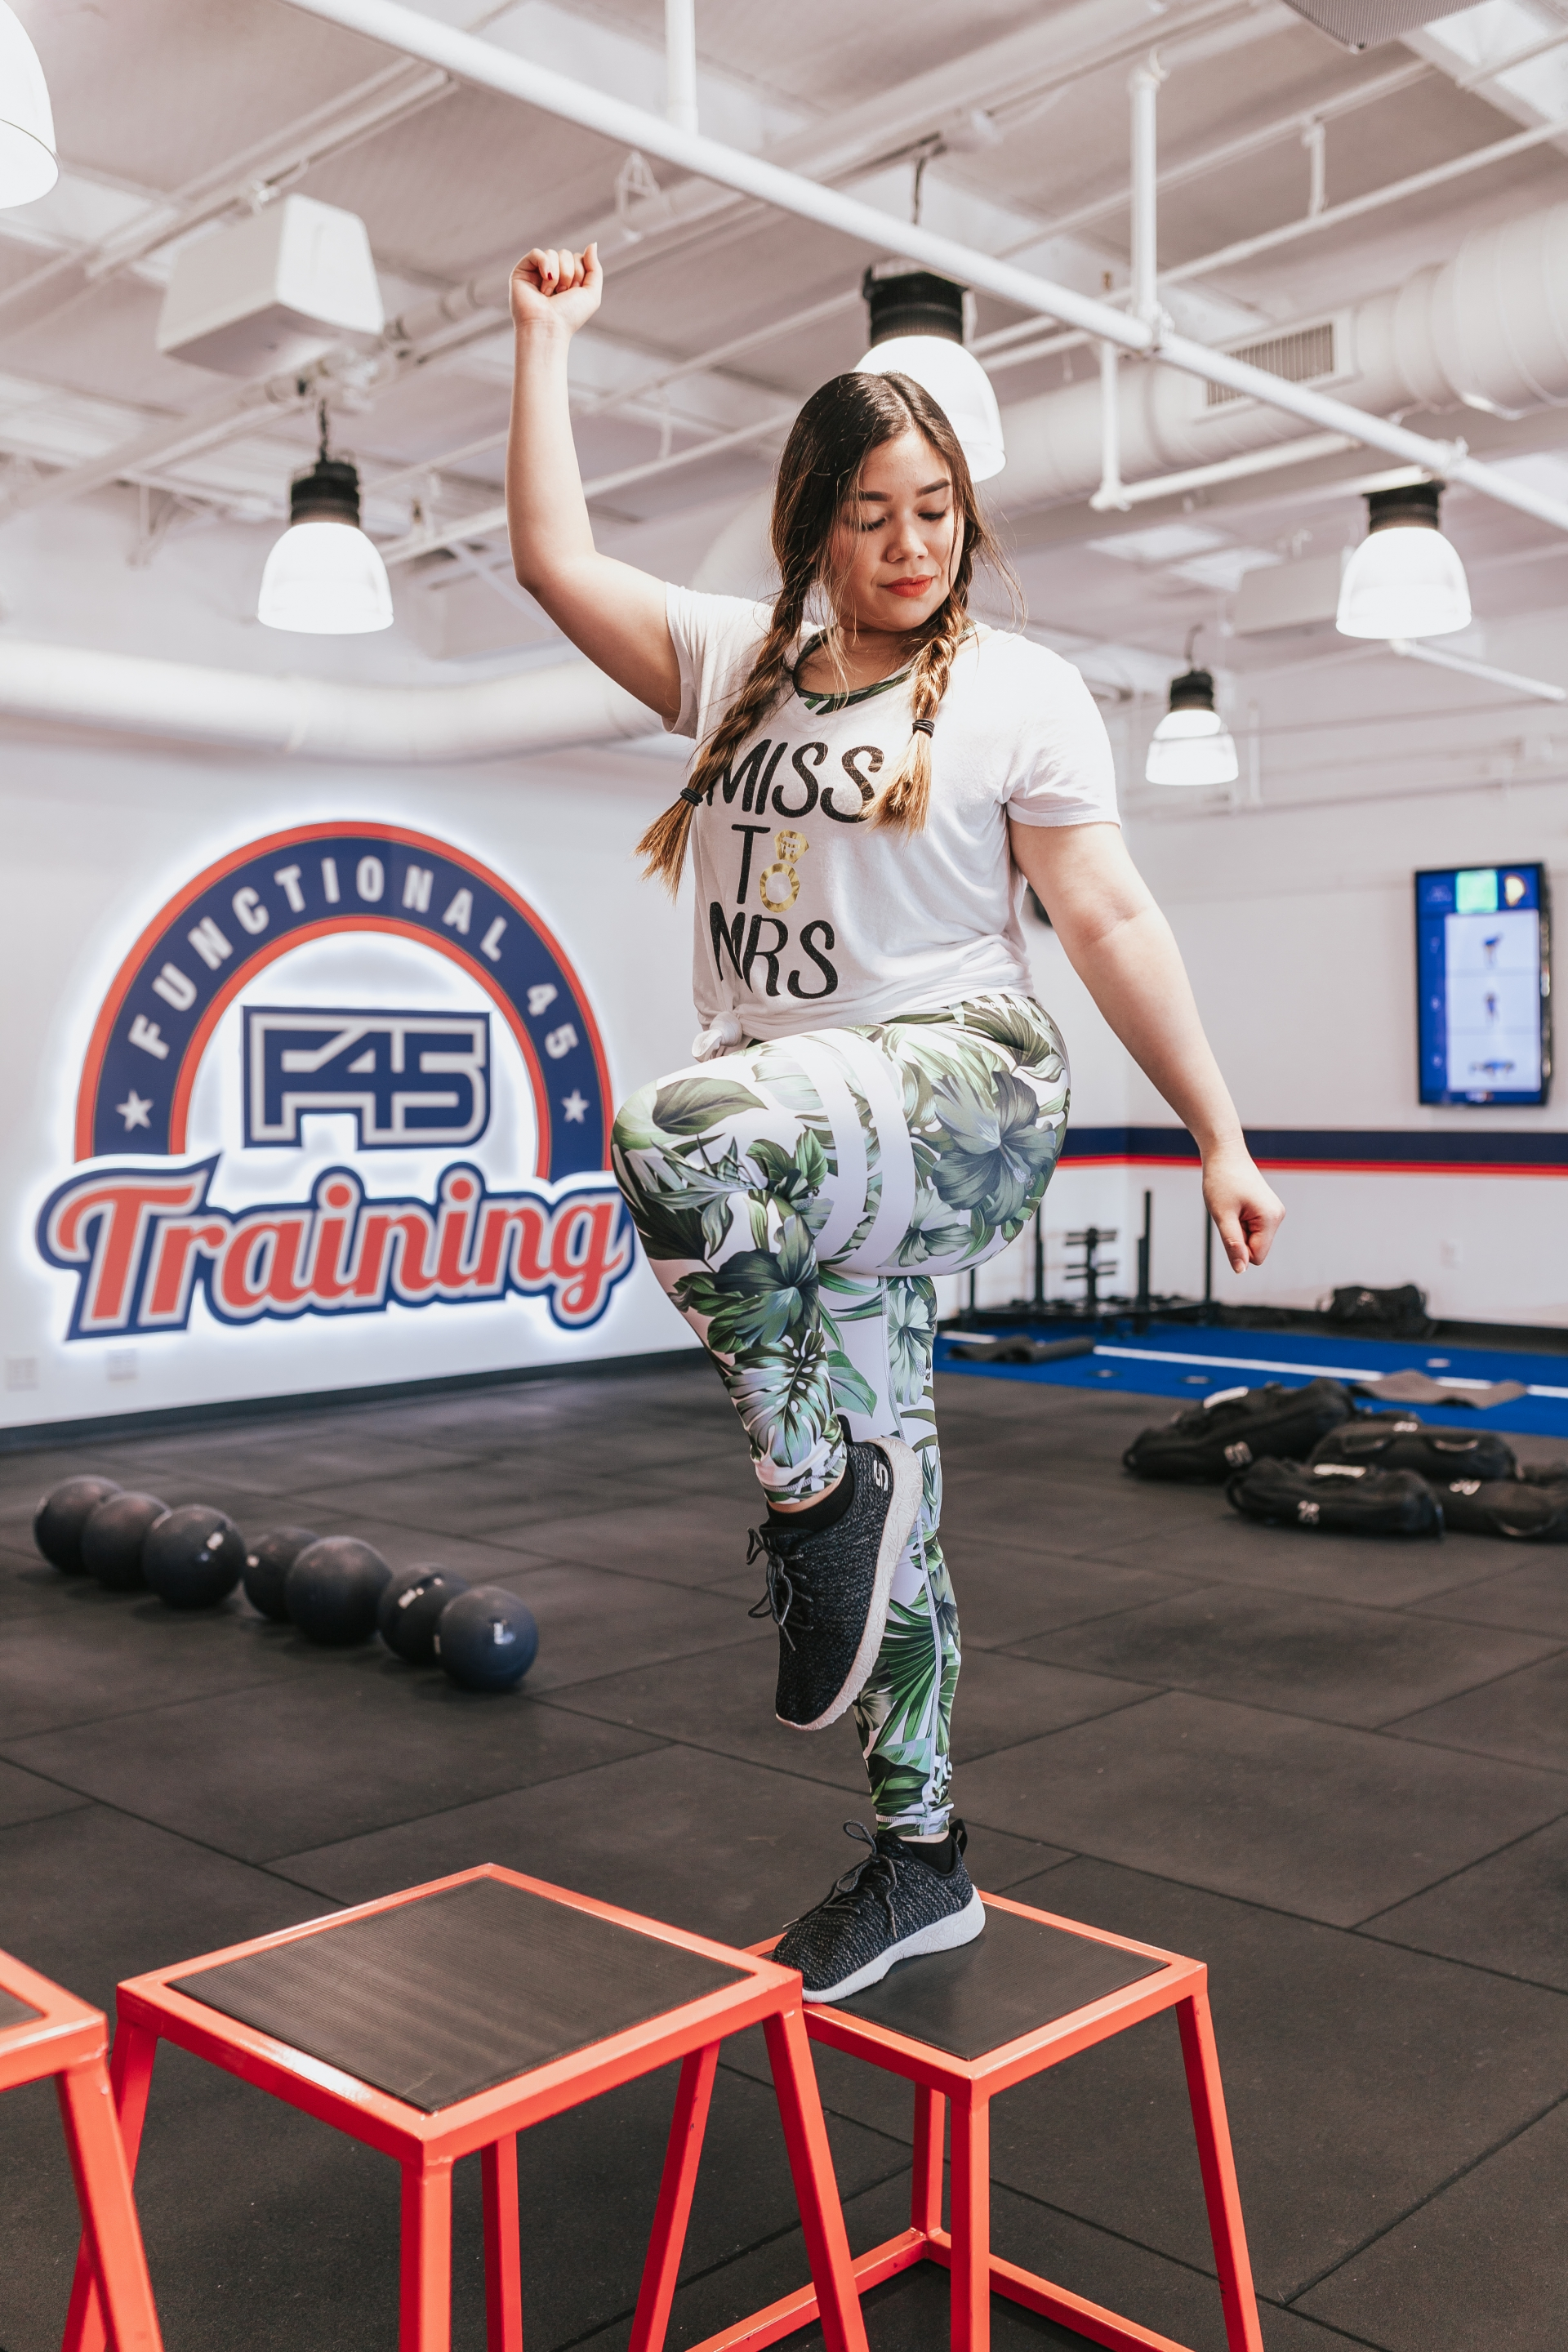 F45 Willow Bend F45 Training F45 Challenge F45 Dallas Texas Plano Texas Frisco Texas How F45 Changed My Life Why F45 Is the Best Workout Everything You Need to Know About F45 Functional Training Circuit Training Team Training HIIT Workout